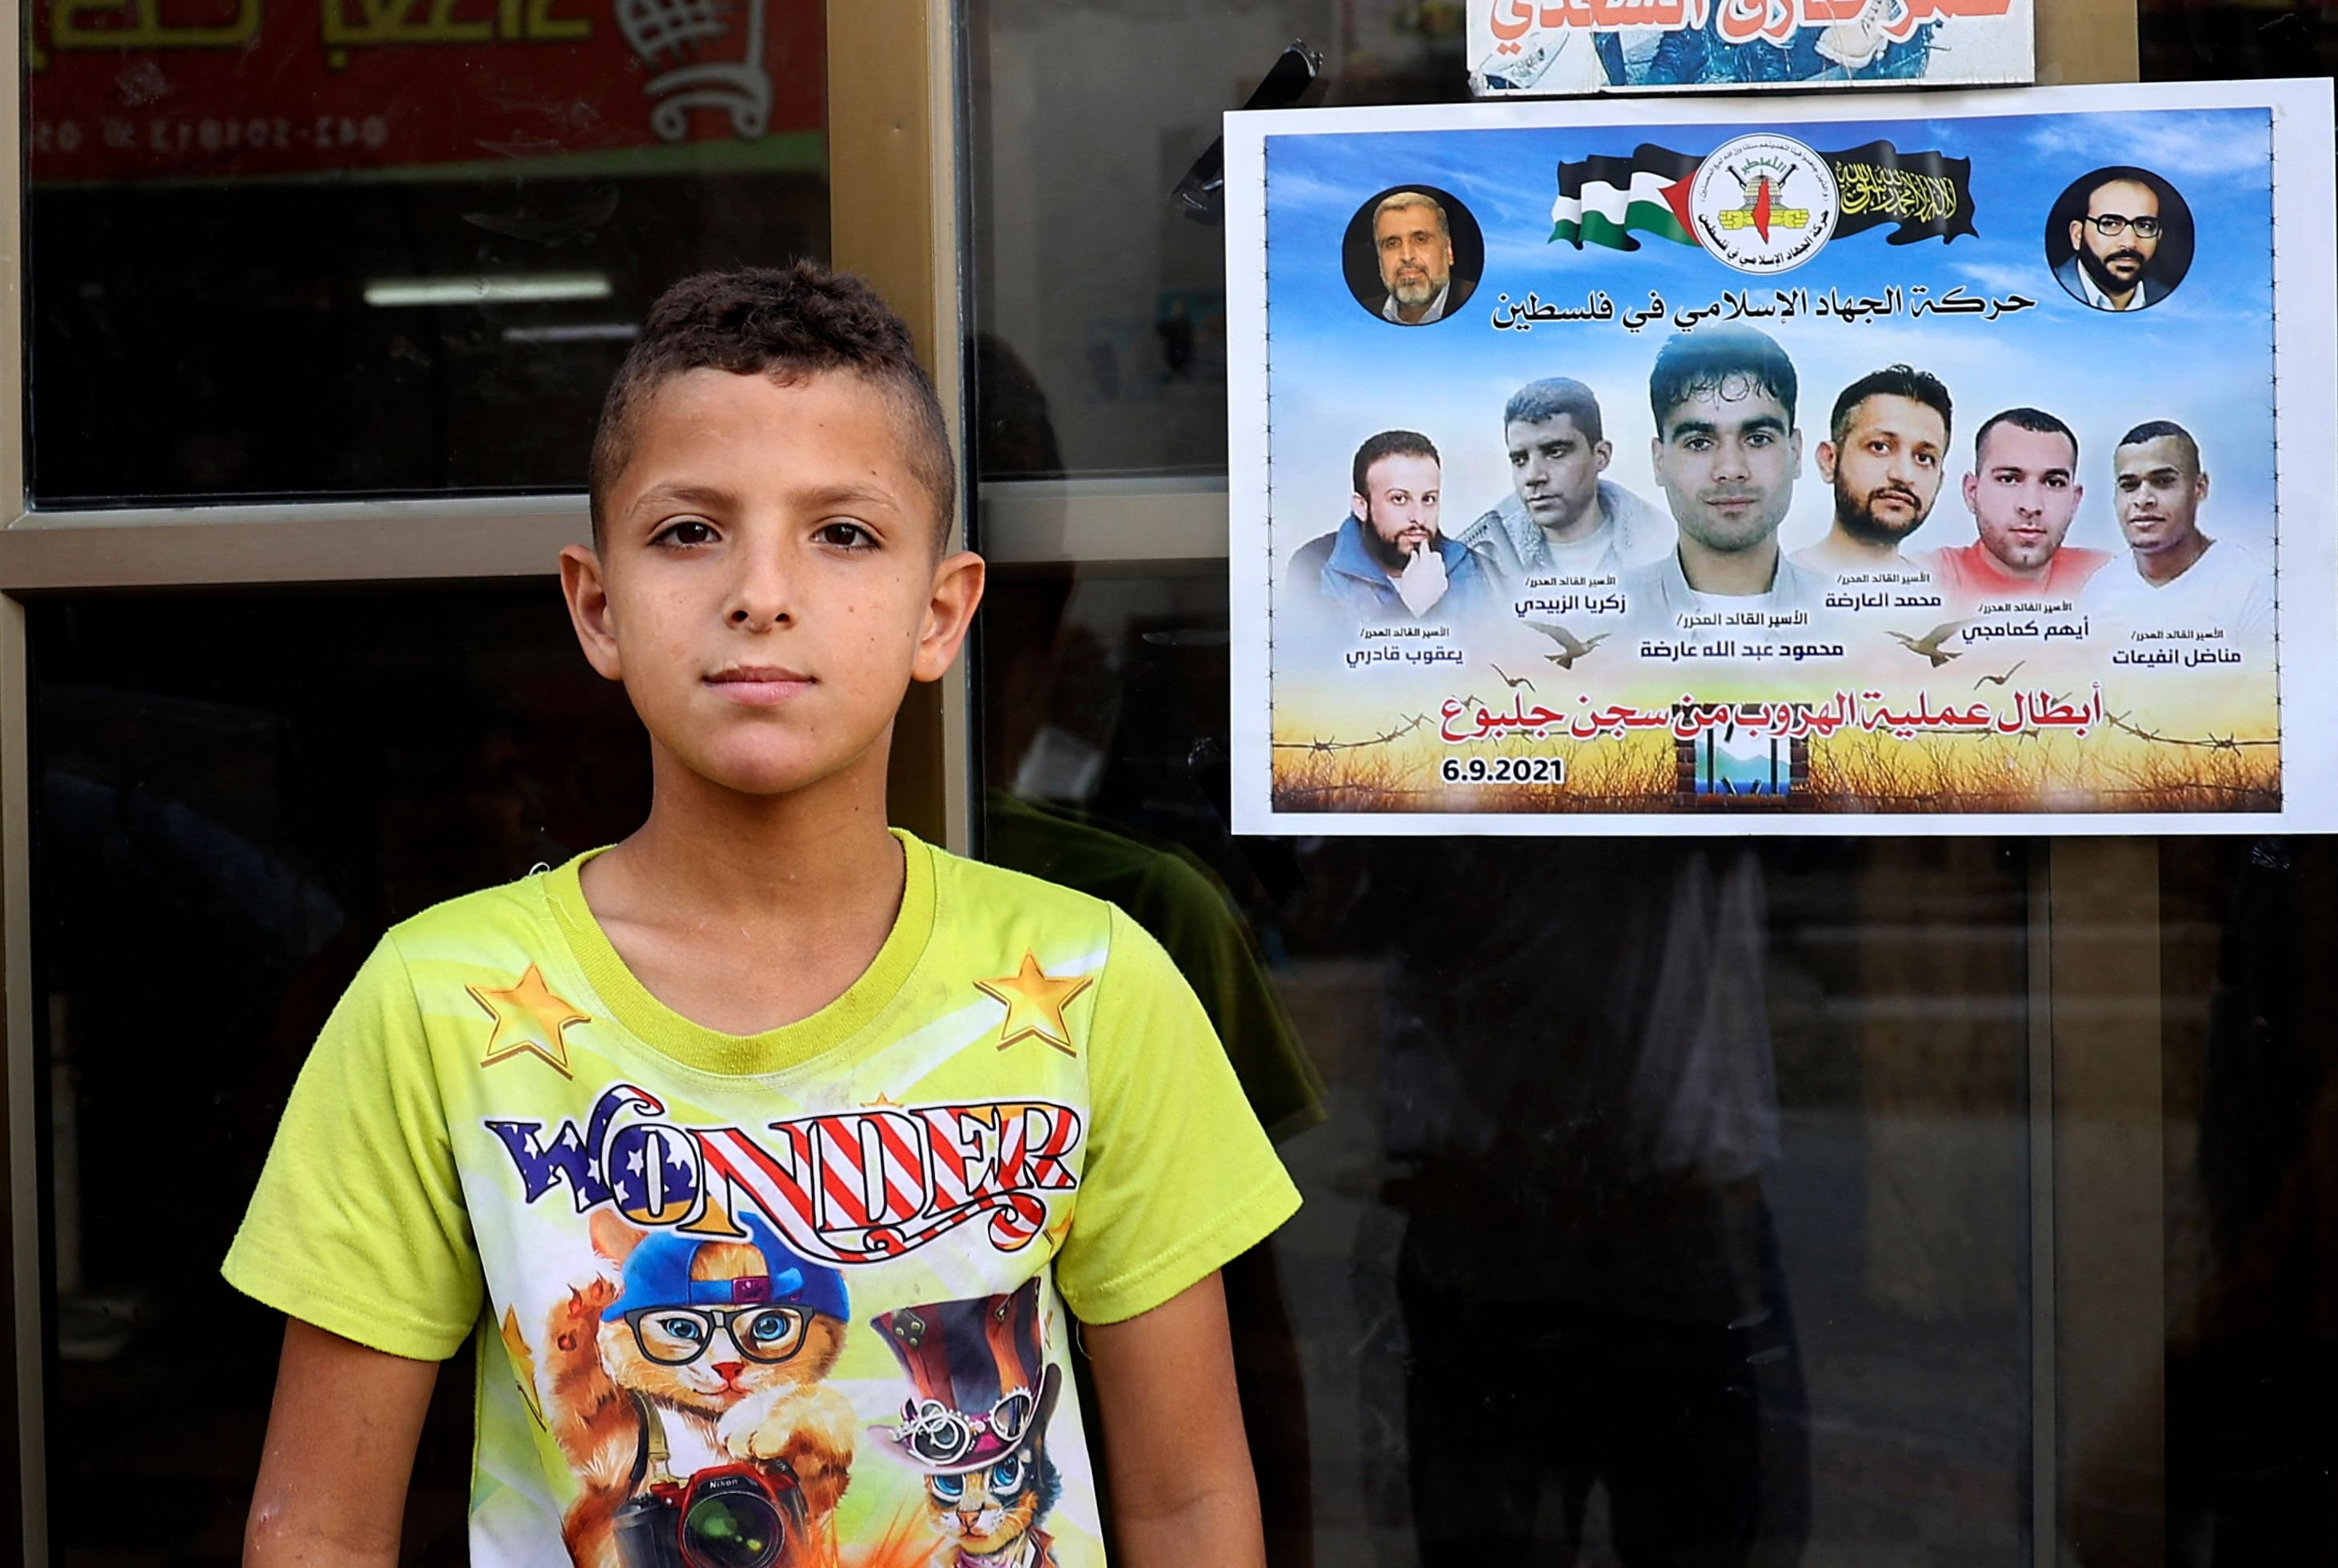 A Palestinian child looks on while standing next to a poster expressing solidarity with the six Palestinian prisoners who escaped from Israel's Gilboa prison, hanging outside a shop at the Jenin camp for Palestinian refugees in the north of the occupied West Bank, Palestine, Sept. 12, 2021. (Photo by JAAFAR ASHTIYEH via AFP)